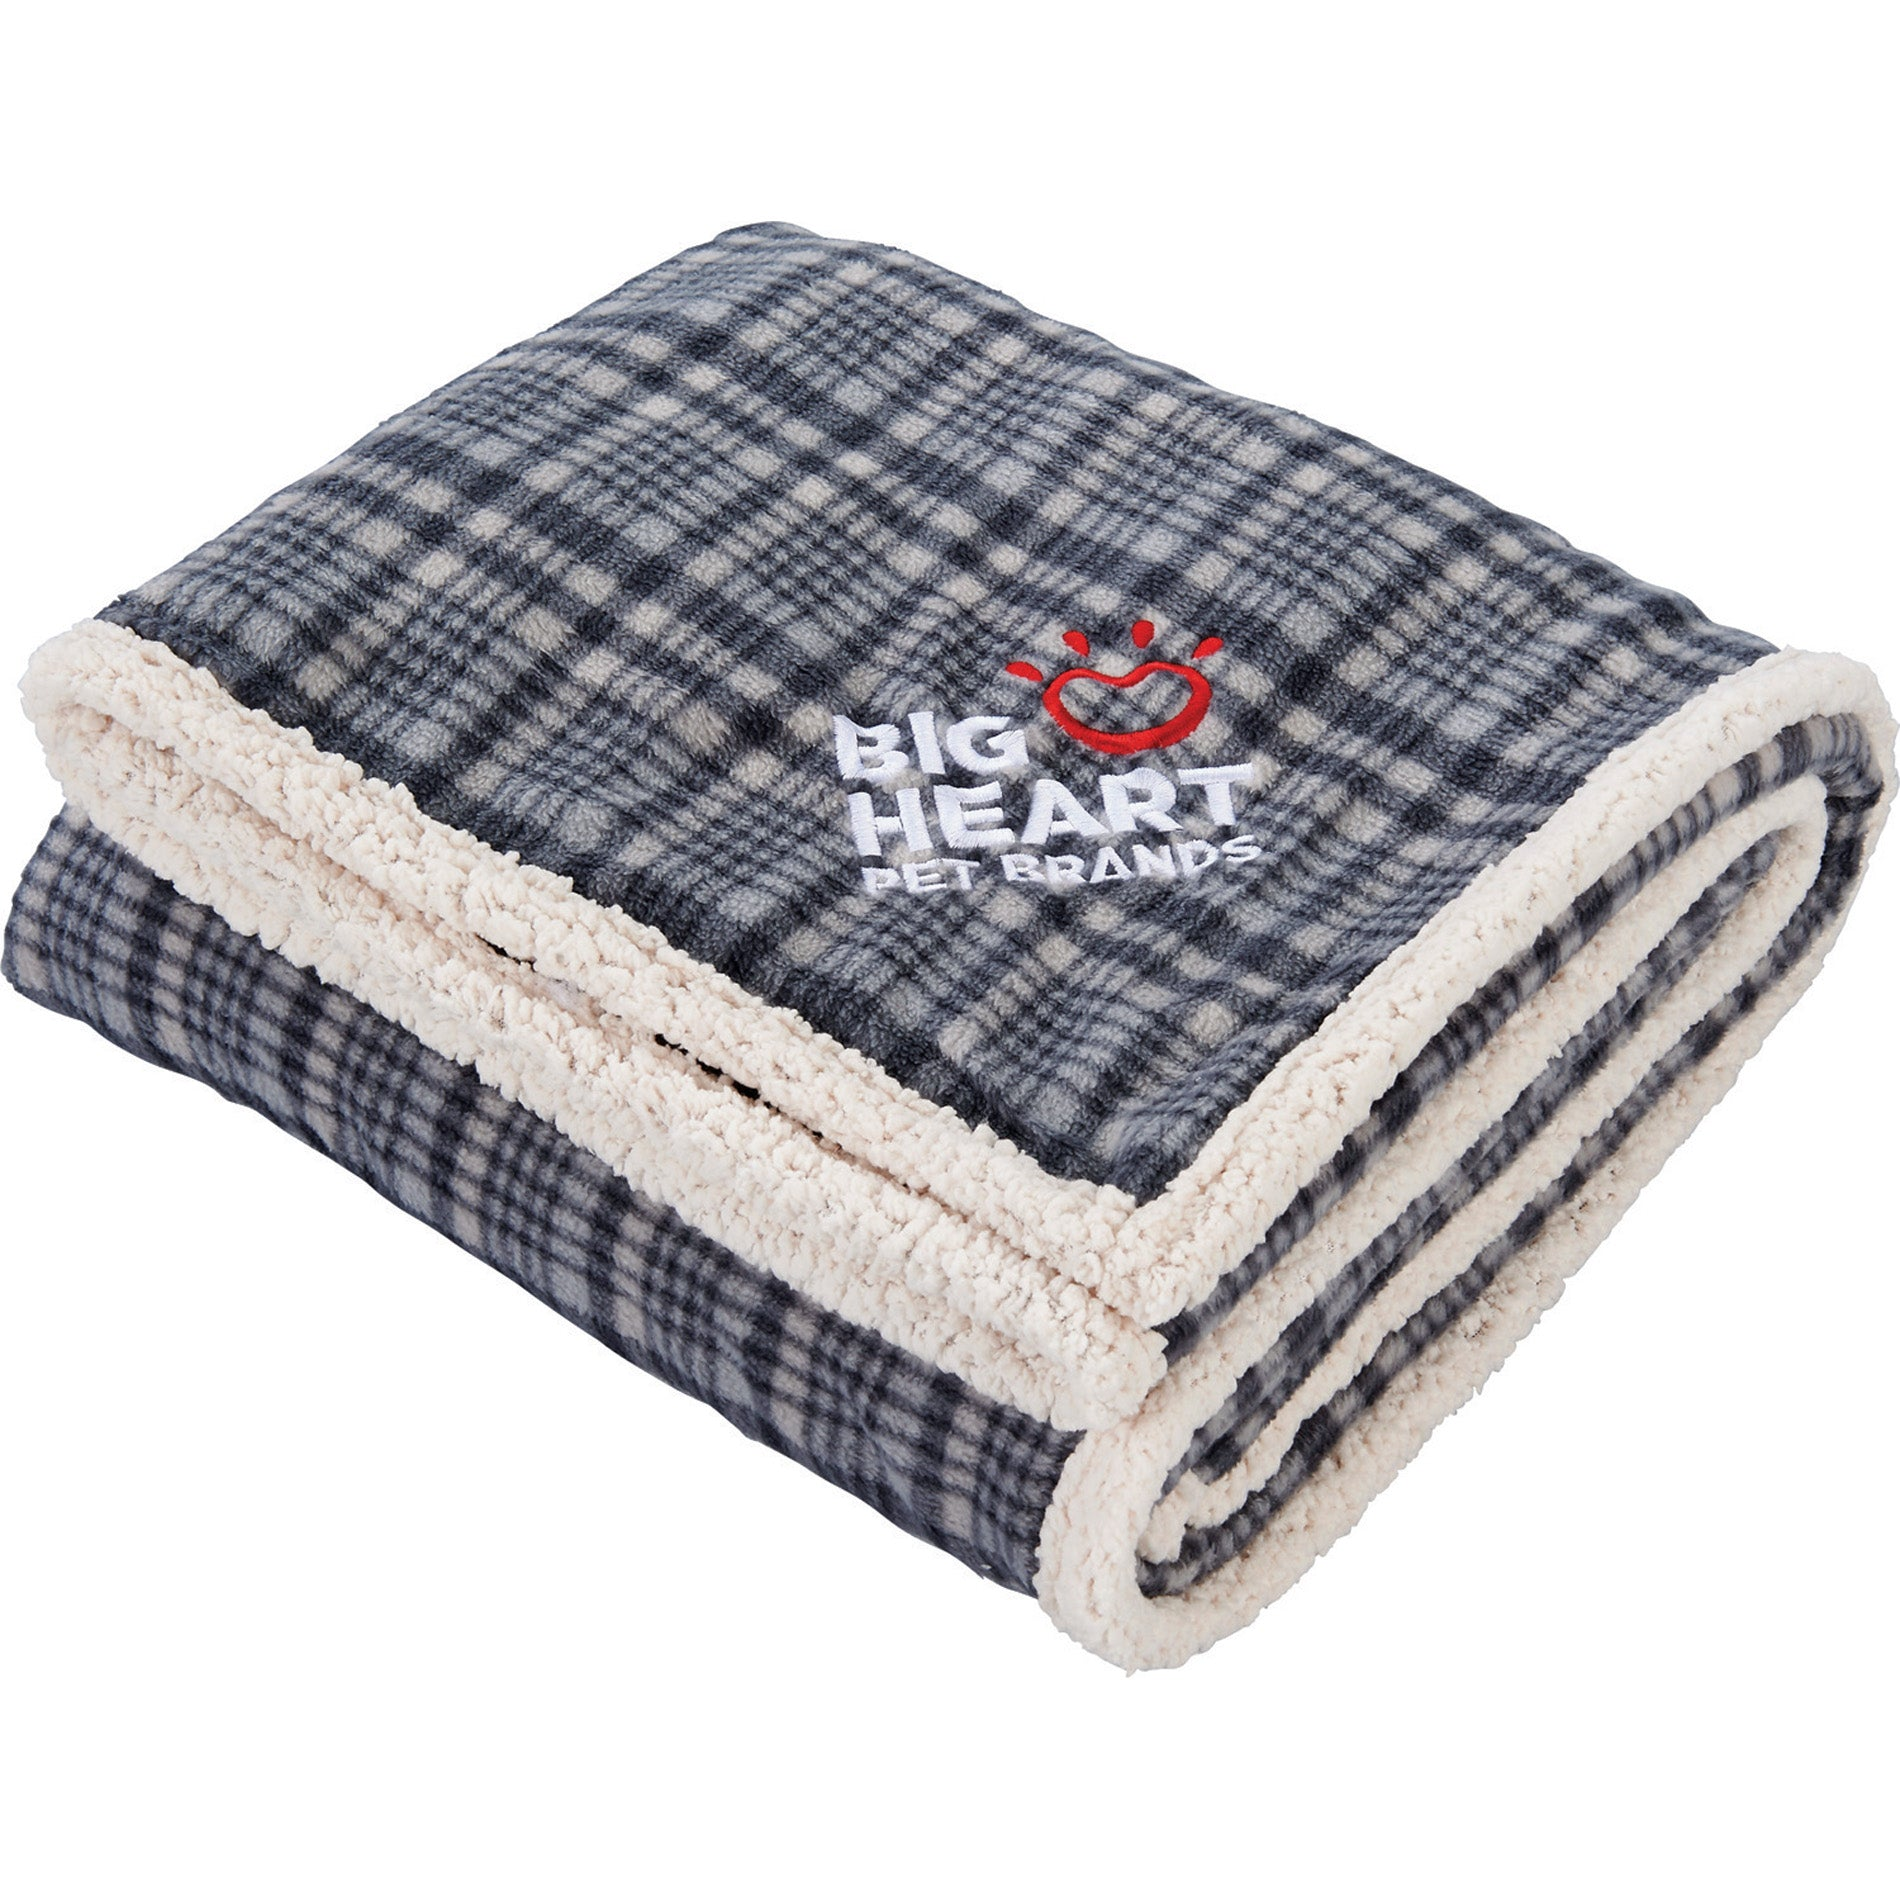 LEEDS FIELD & CO® PLAID SHERPA BLANKET